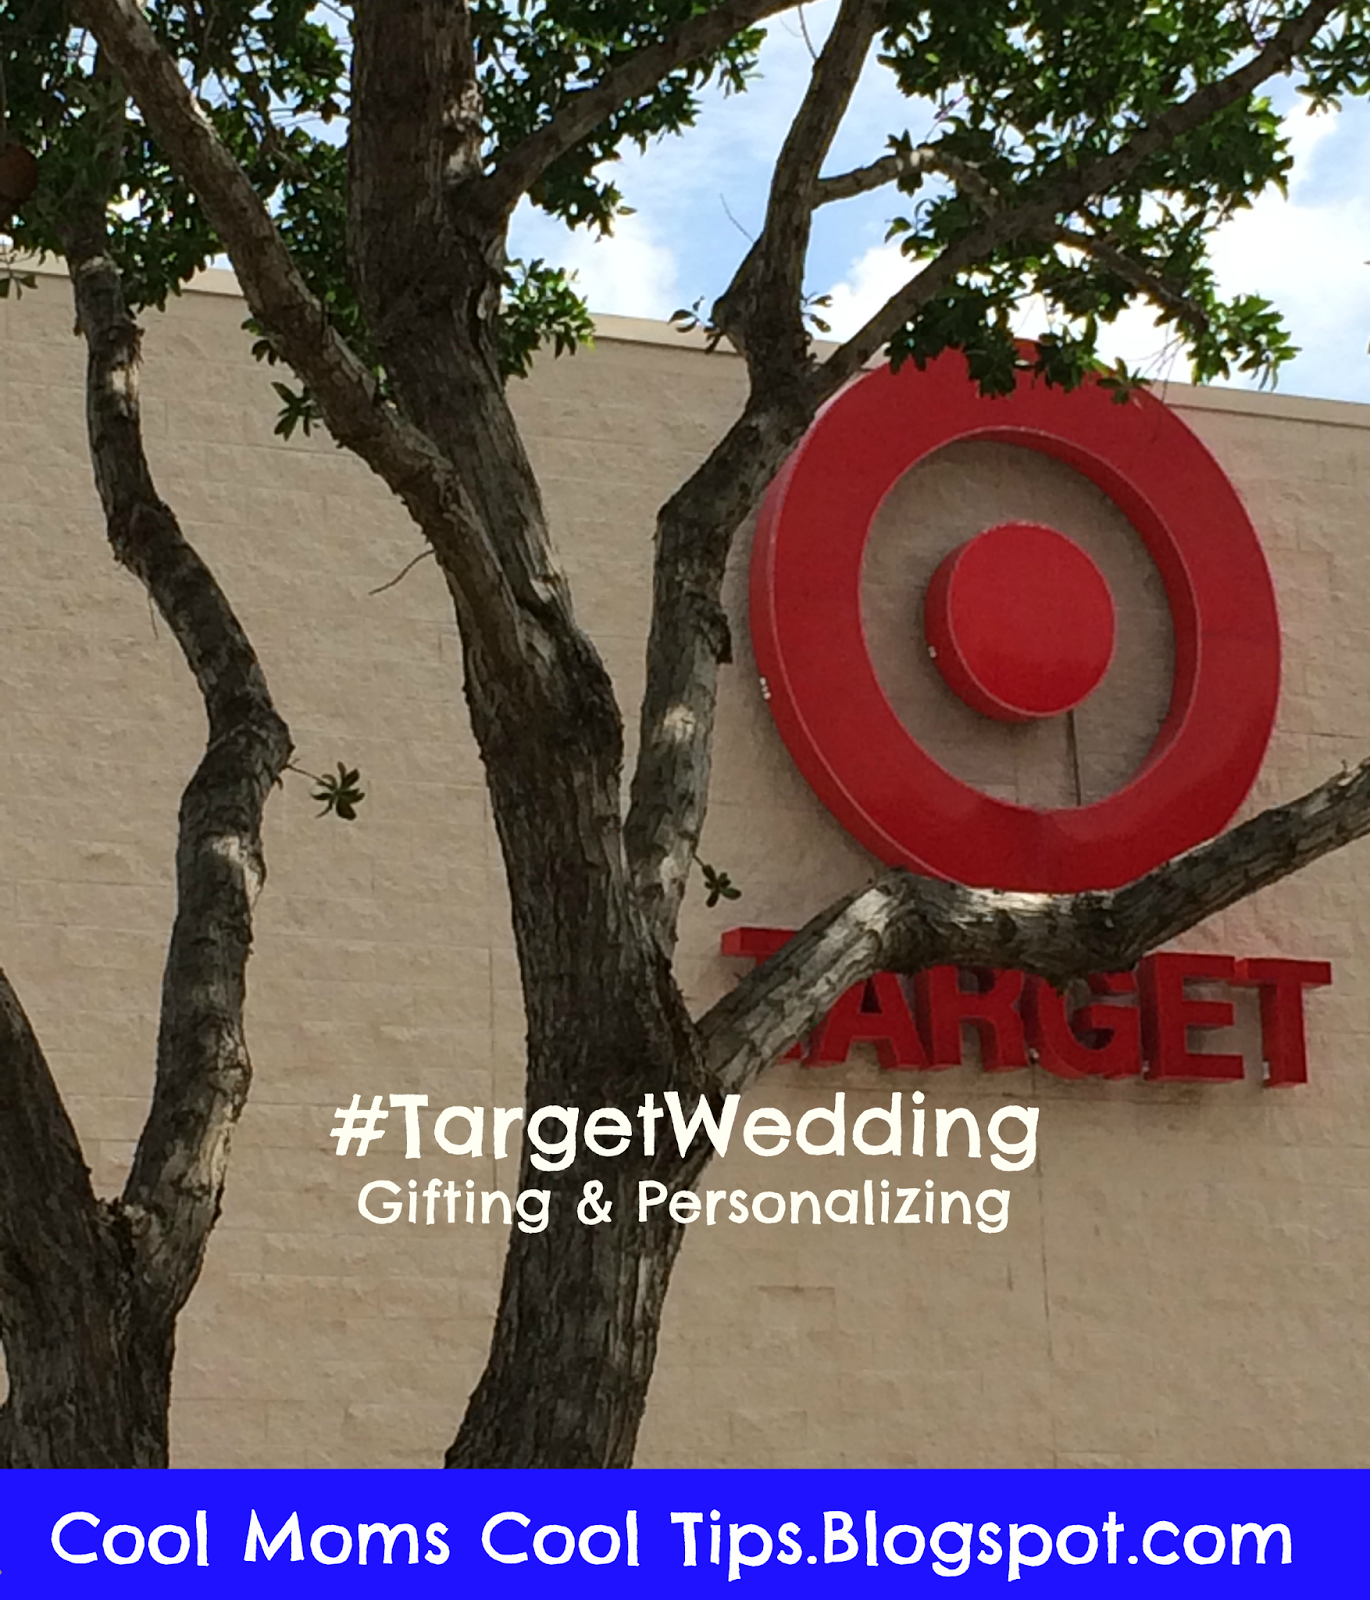 cool moms cool tips #targetwedding #sponsored store entrance